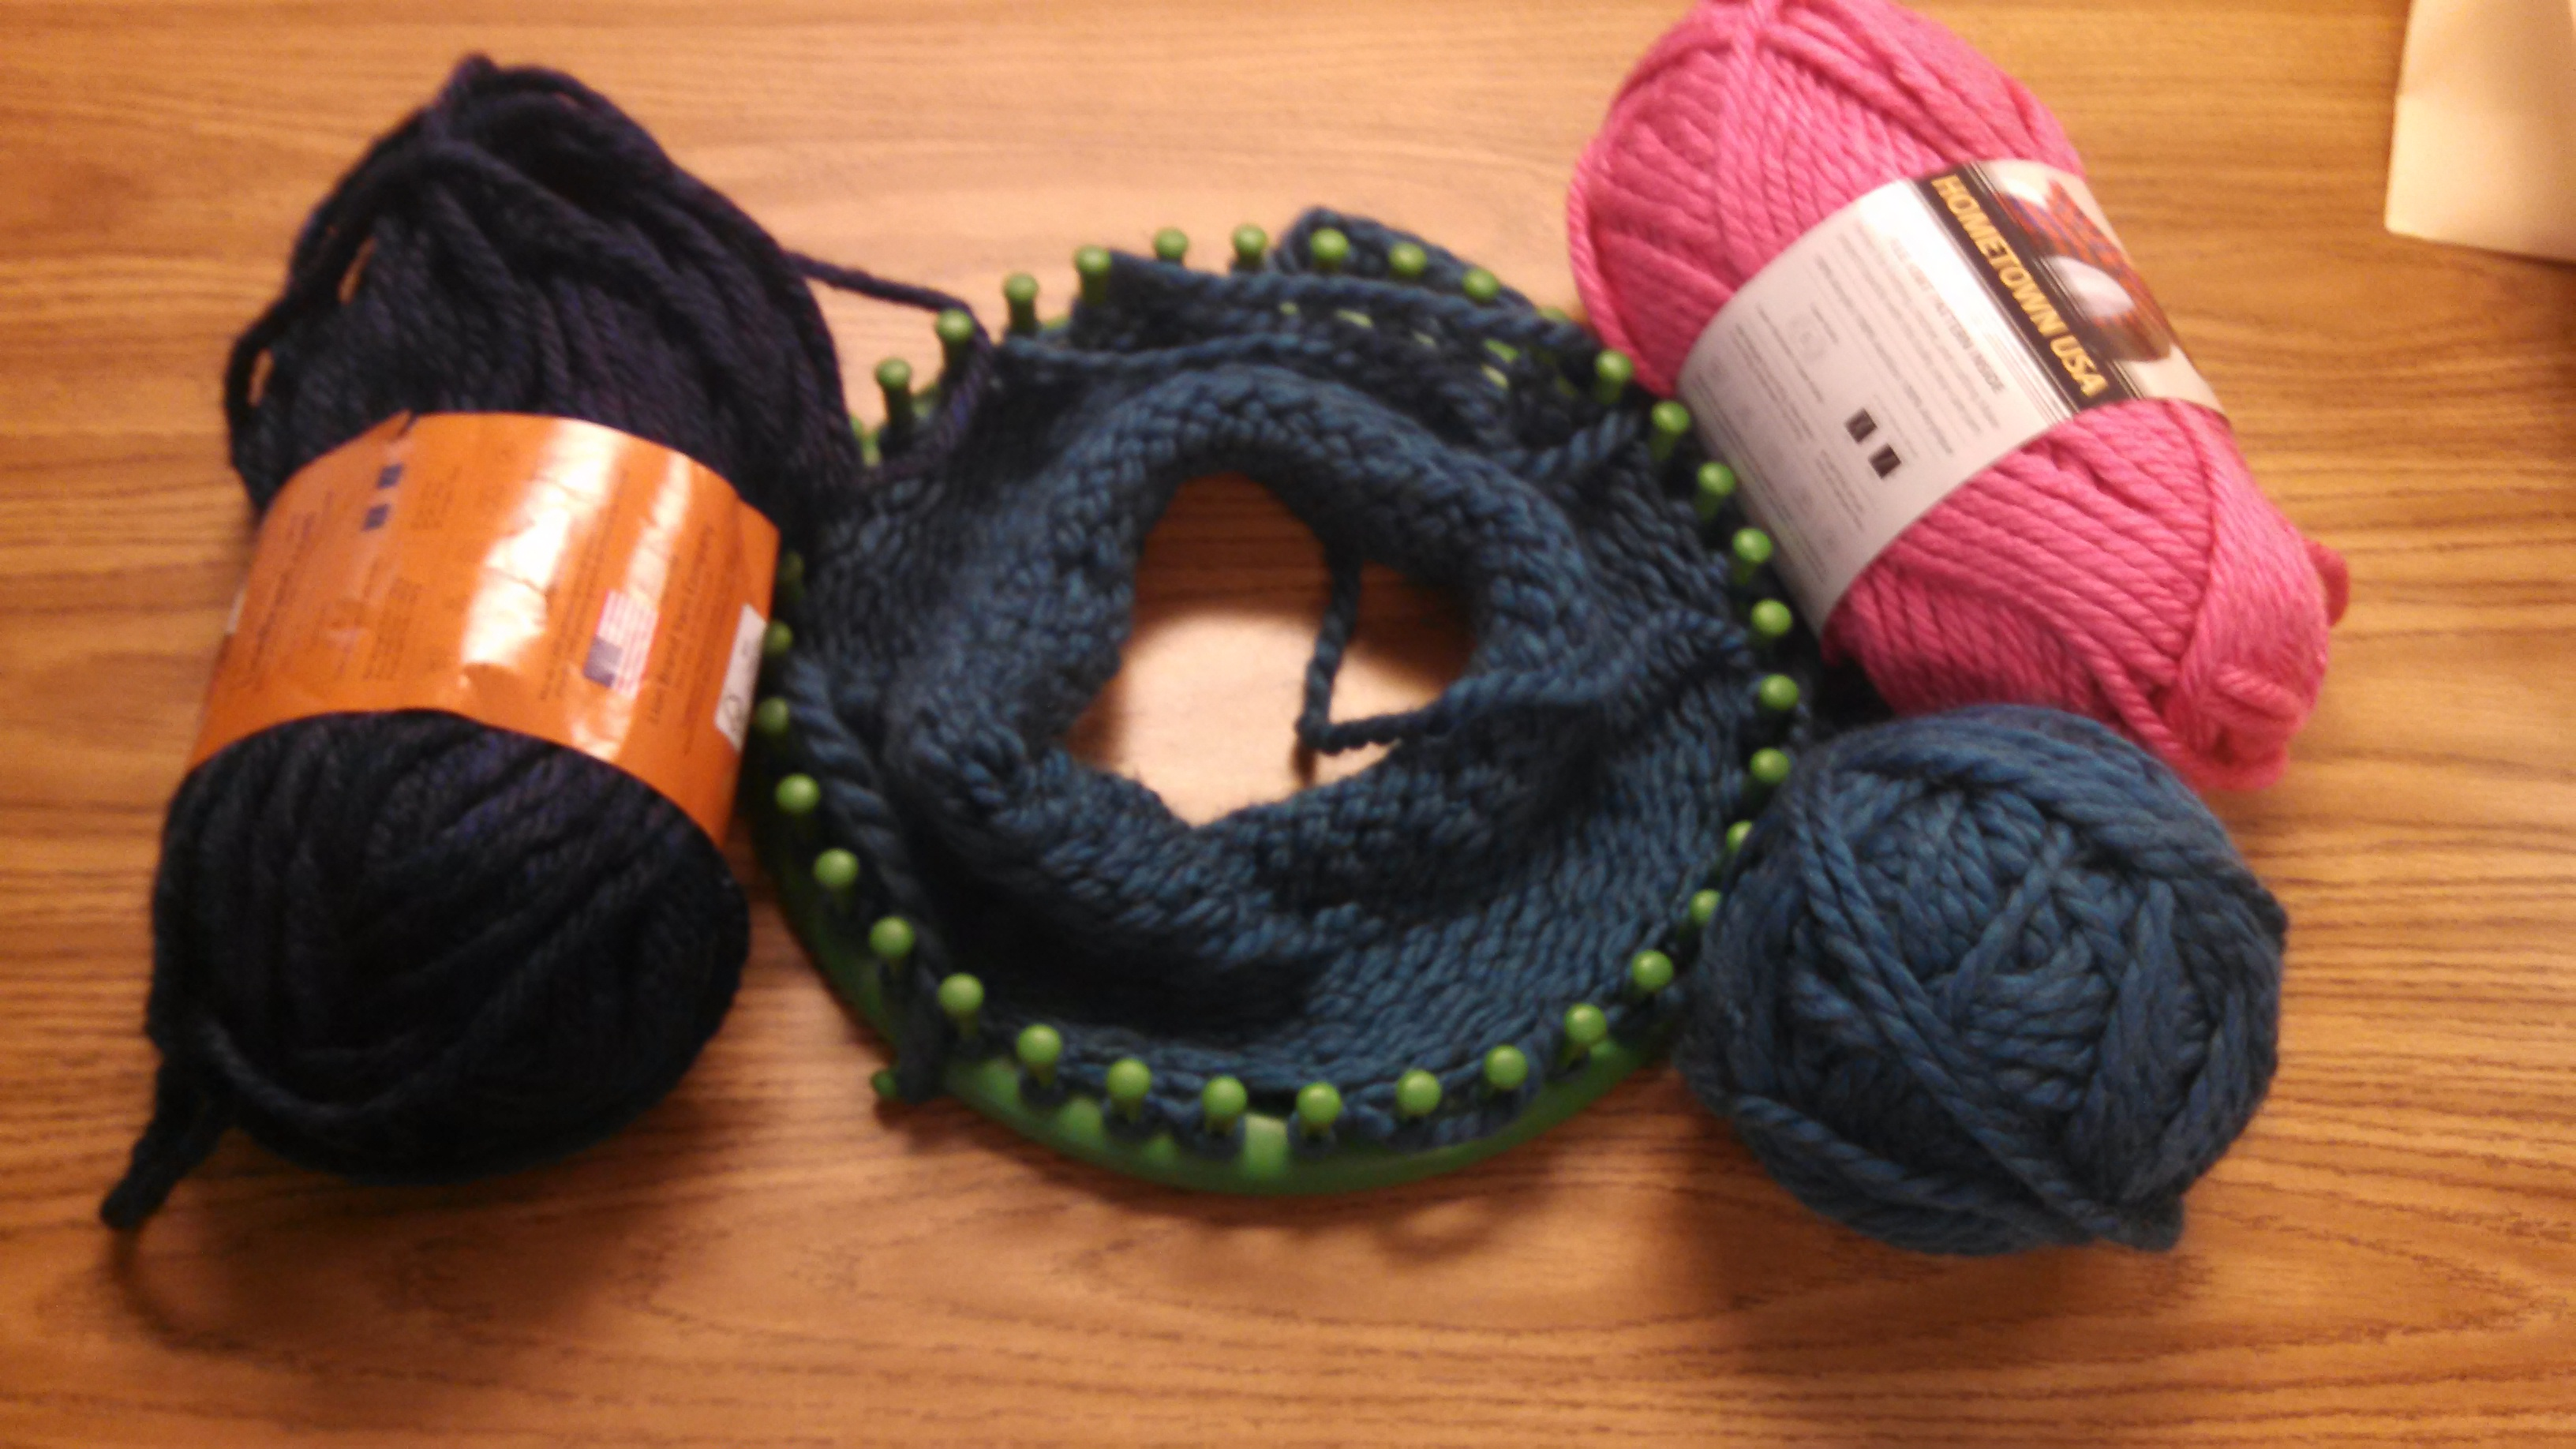 Yarn and a loom for cap making